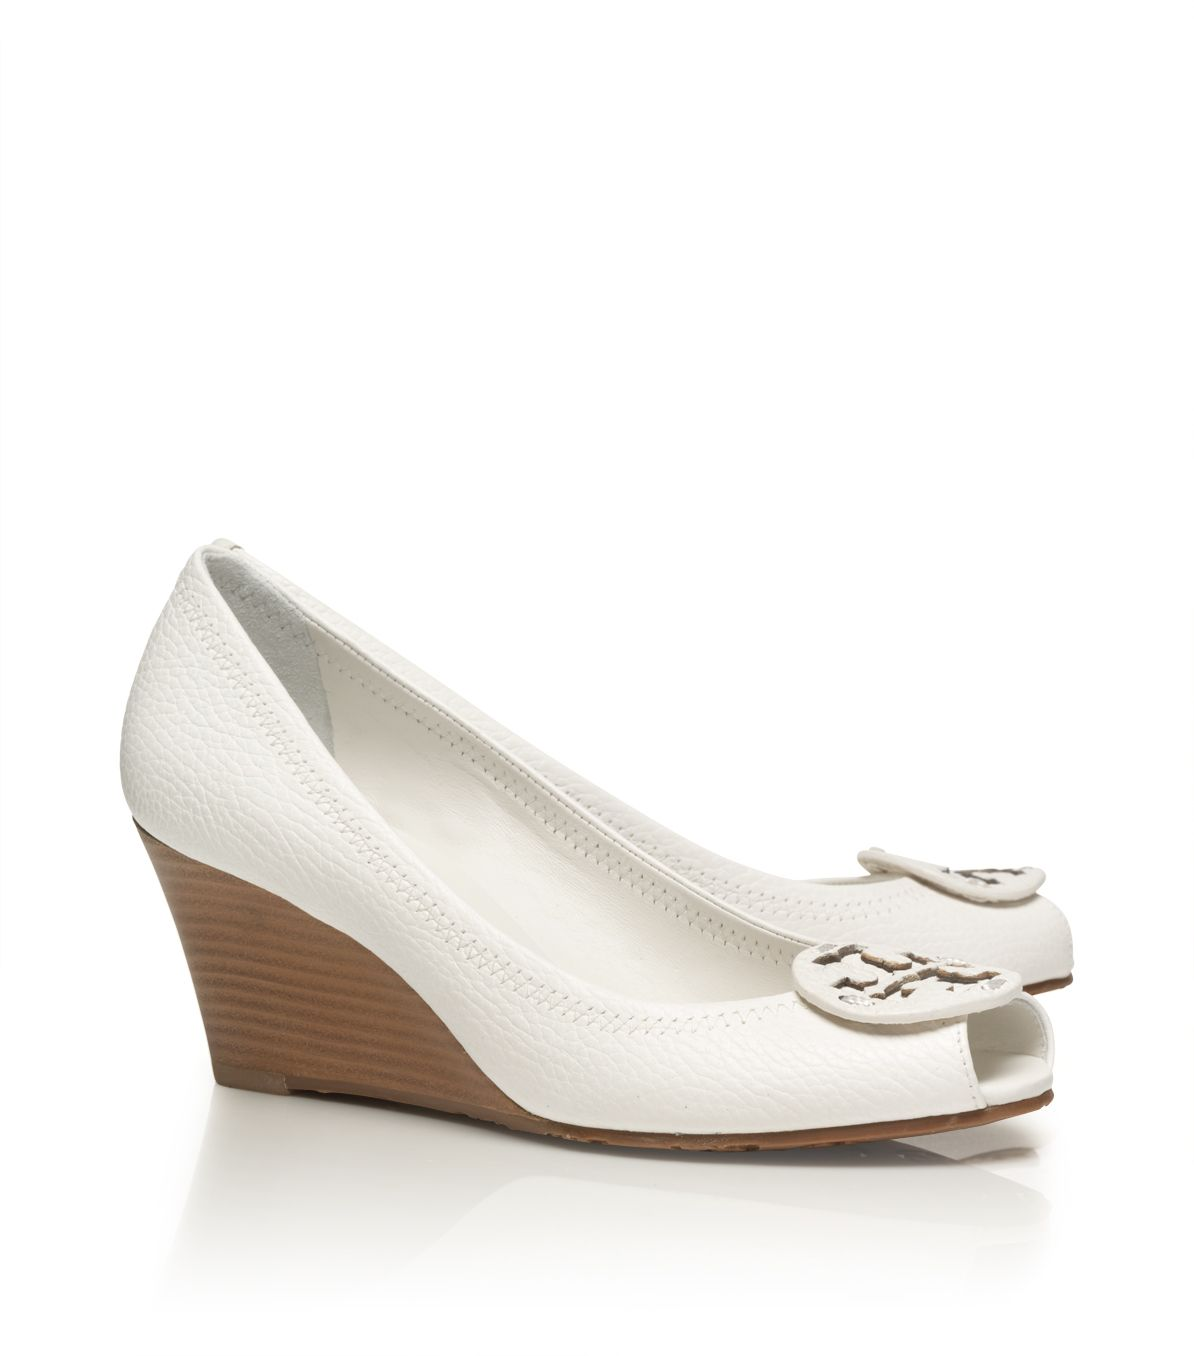 9dab6aec6eb4 Lyst - Tory Burch Tumbled Leather Sally 2 Wedge in Natural